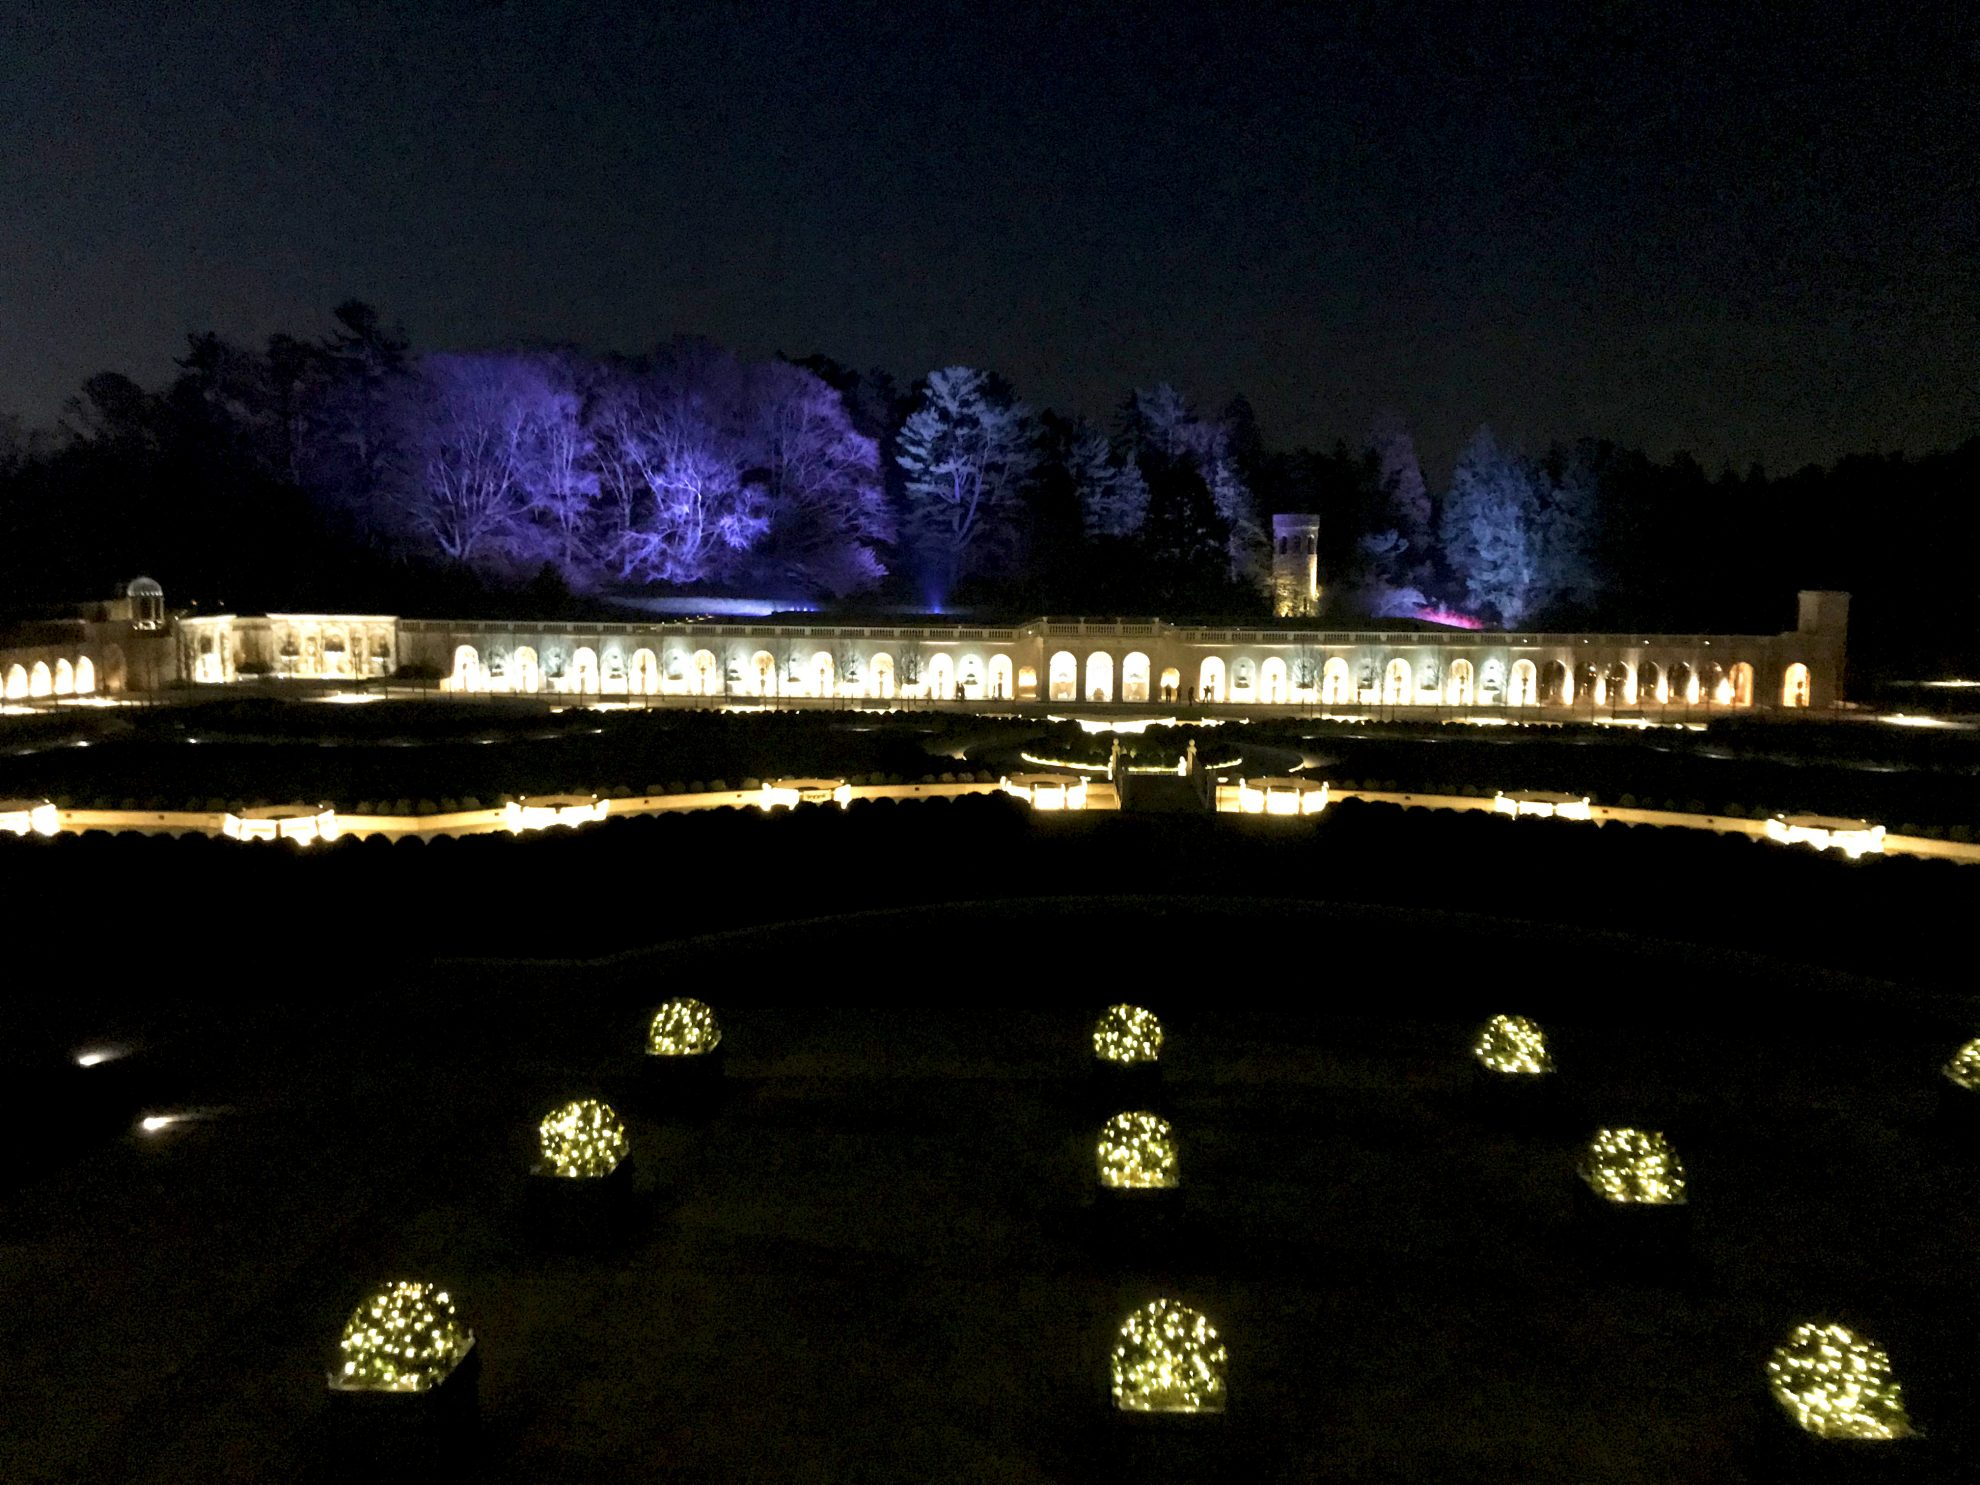 Spectacular lighted display at Longwood Gardens Holiday Lights